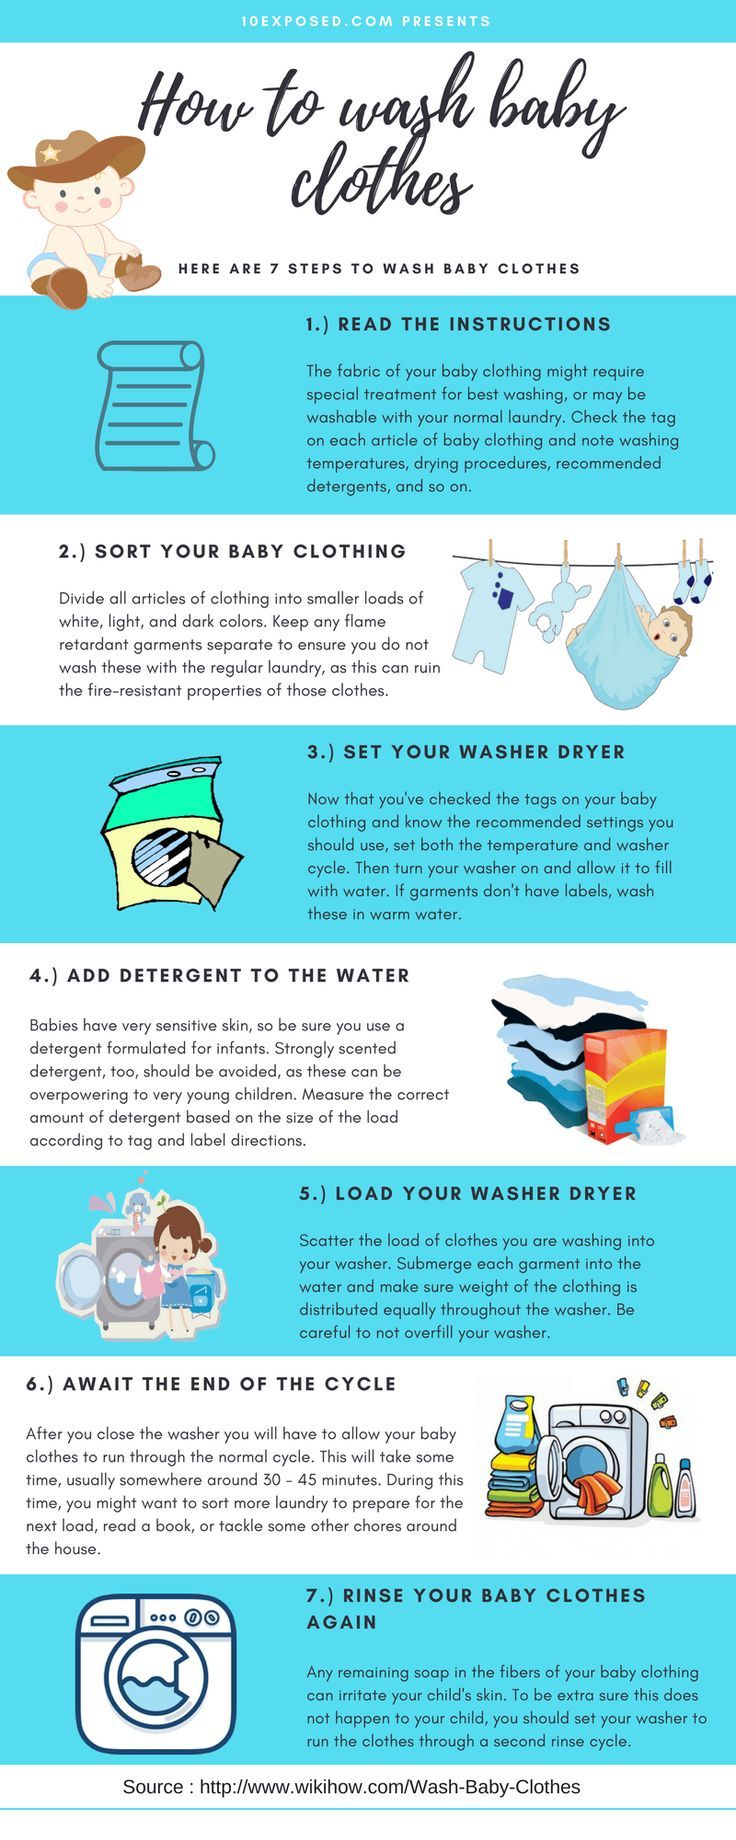 How To Wash Baby Clothes An Easy Guide To Washing Babies Clothes